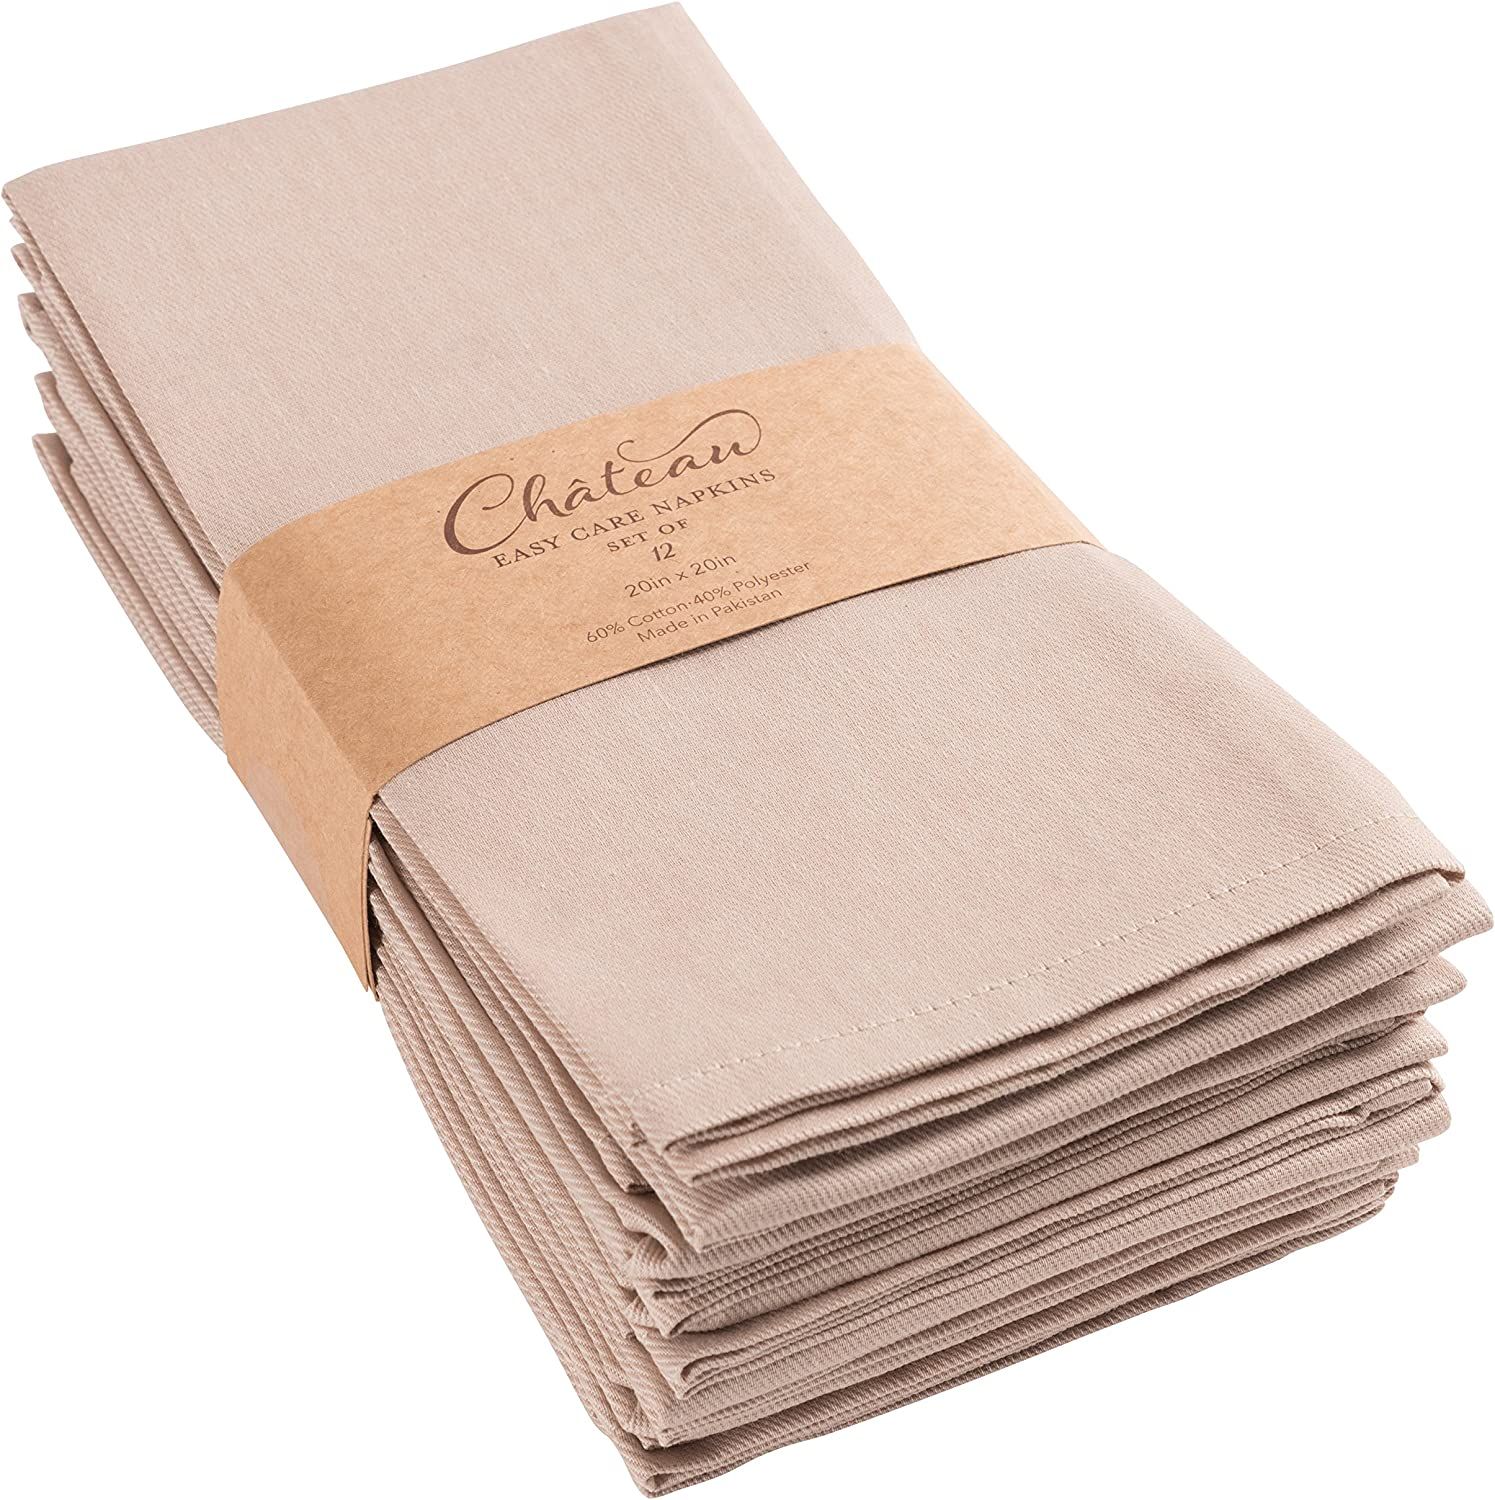 KAF Home Chateau Easy-Care Cloth Dinner Napkins 20 x 20 inches - Navy Blue Set of 12 Oversized